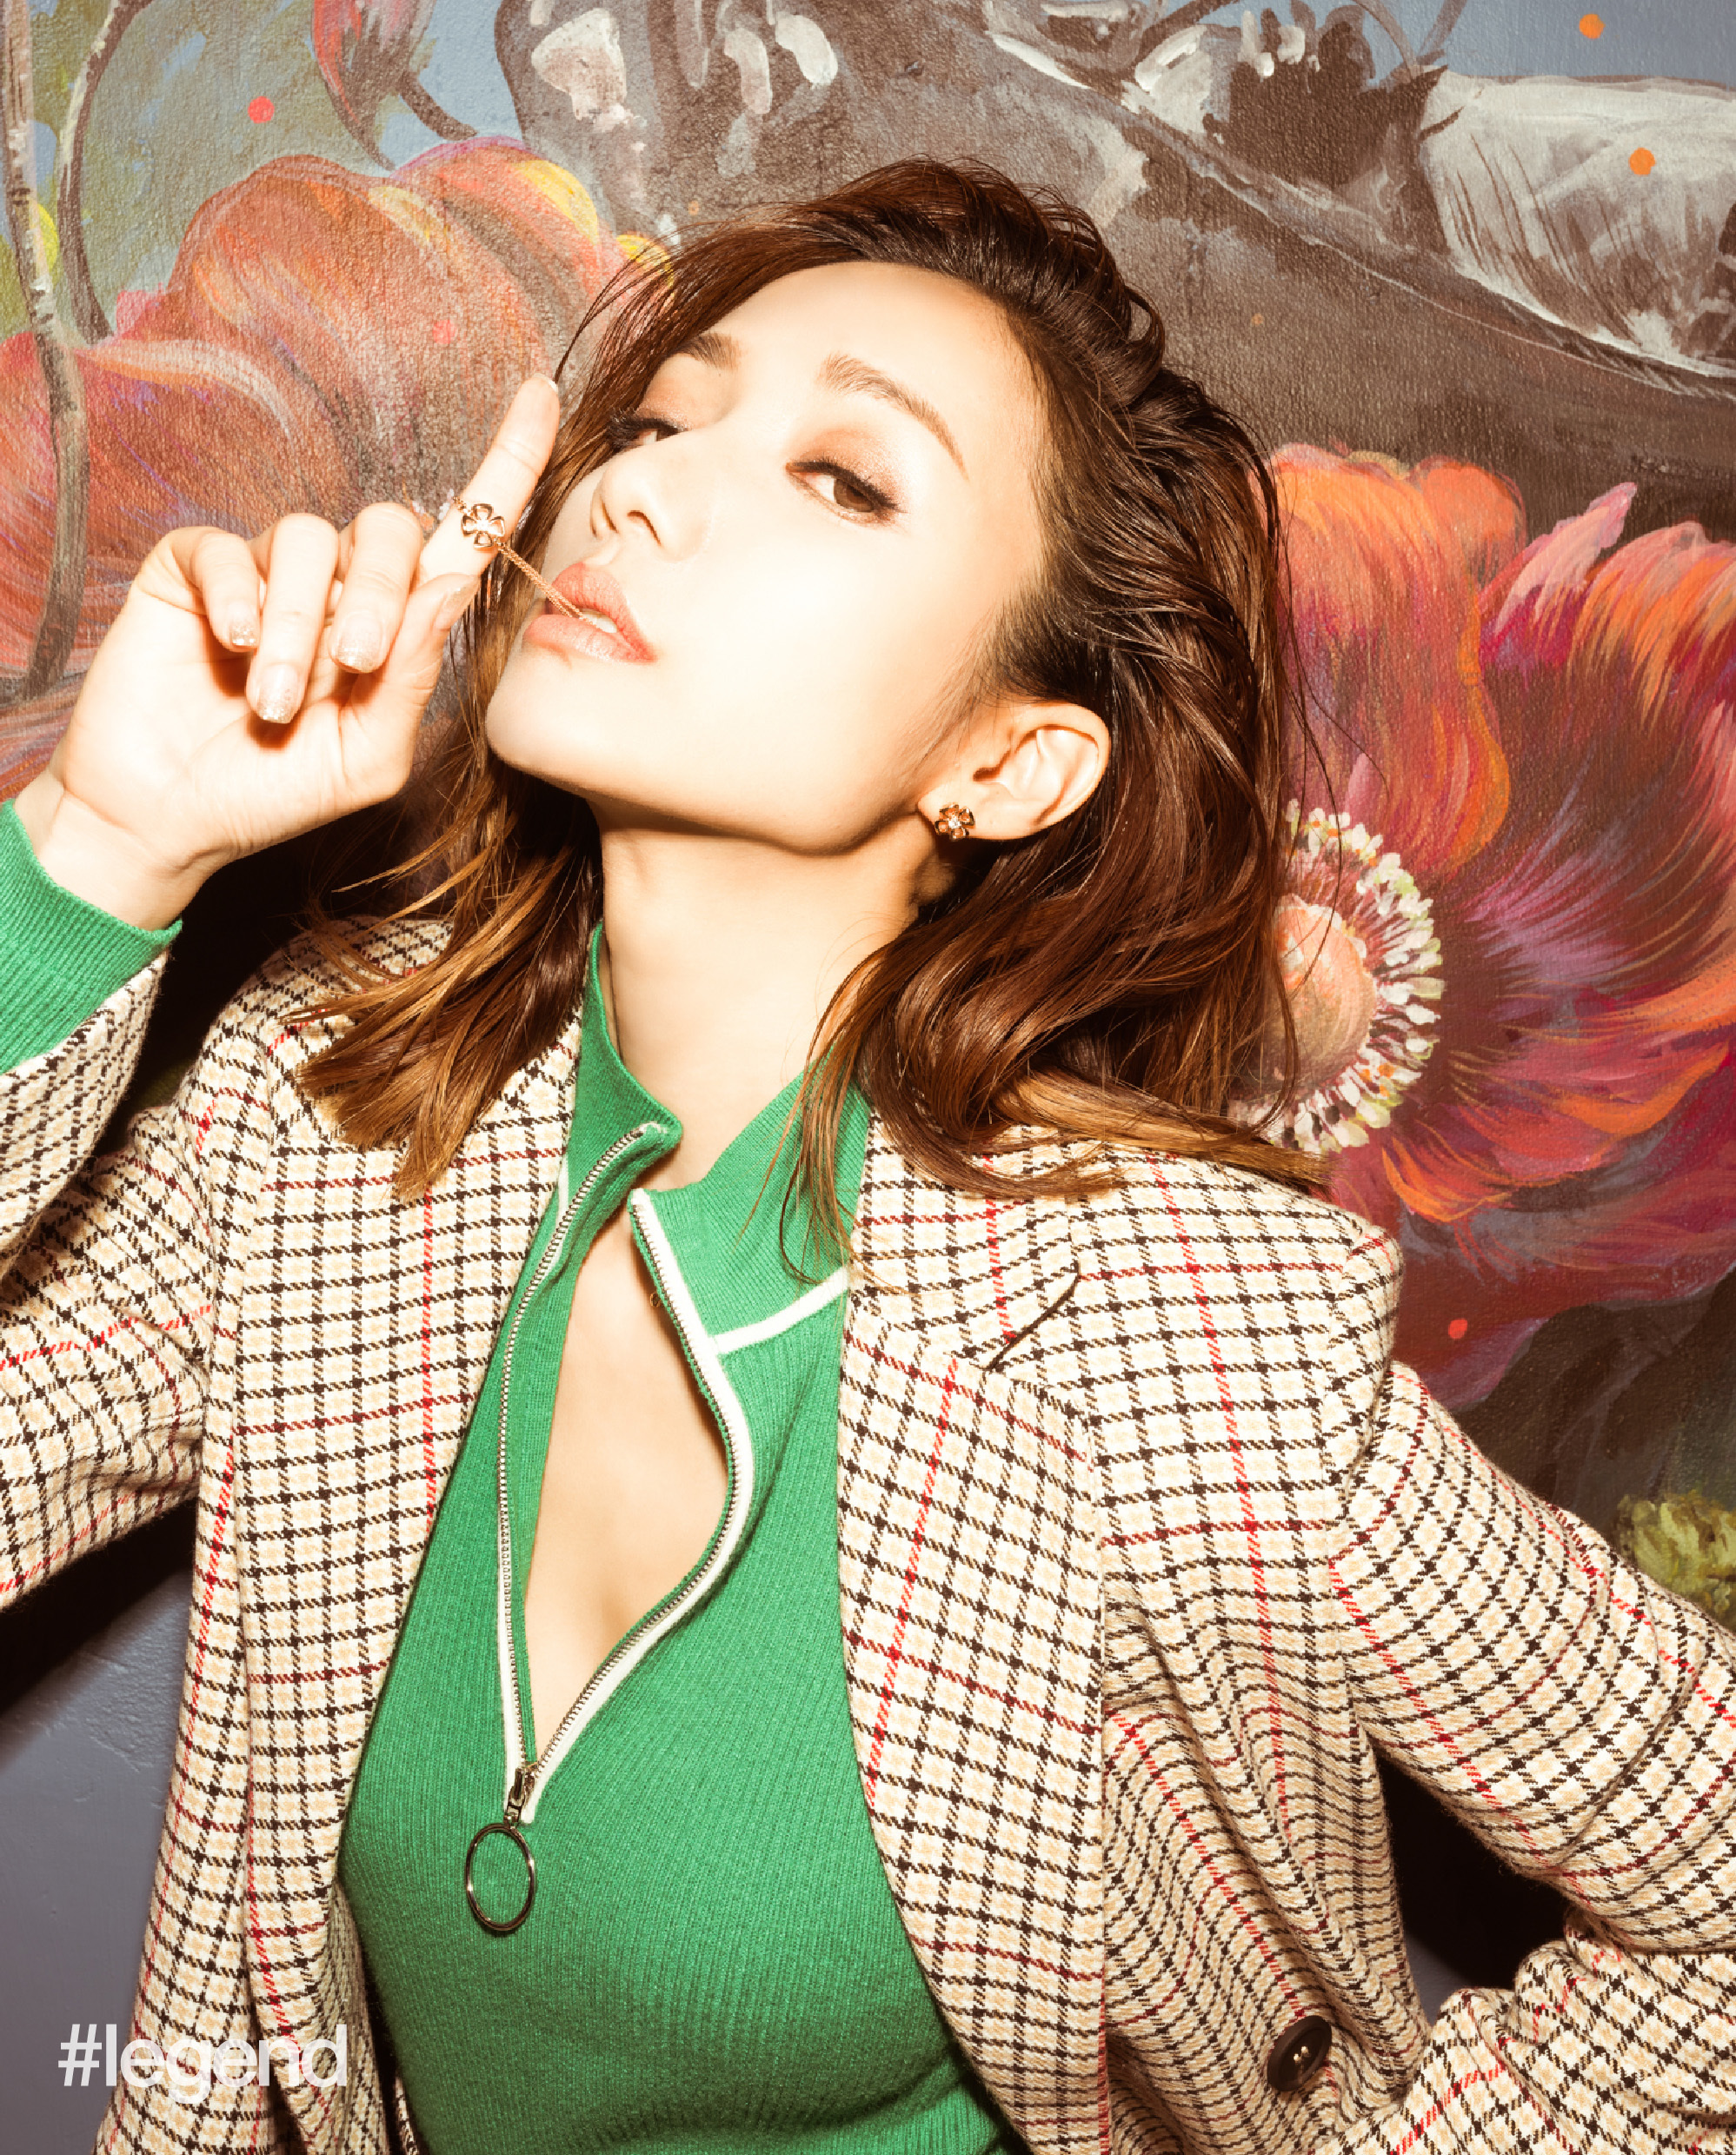 Grace wong in plaid jacket and green shirt